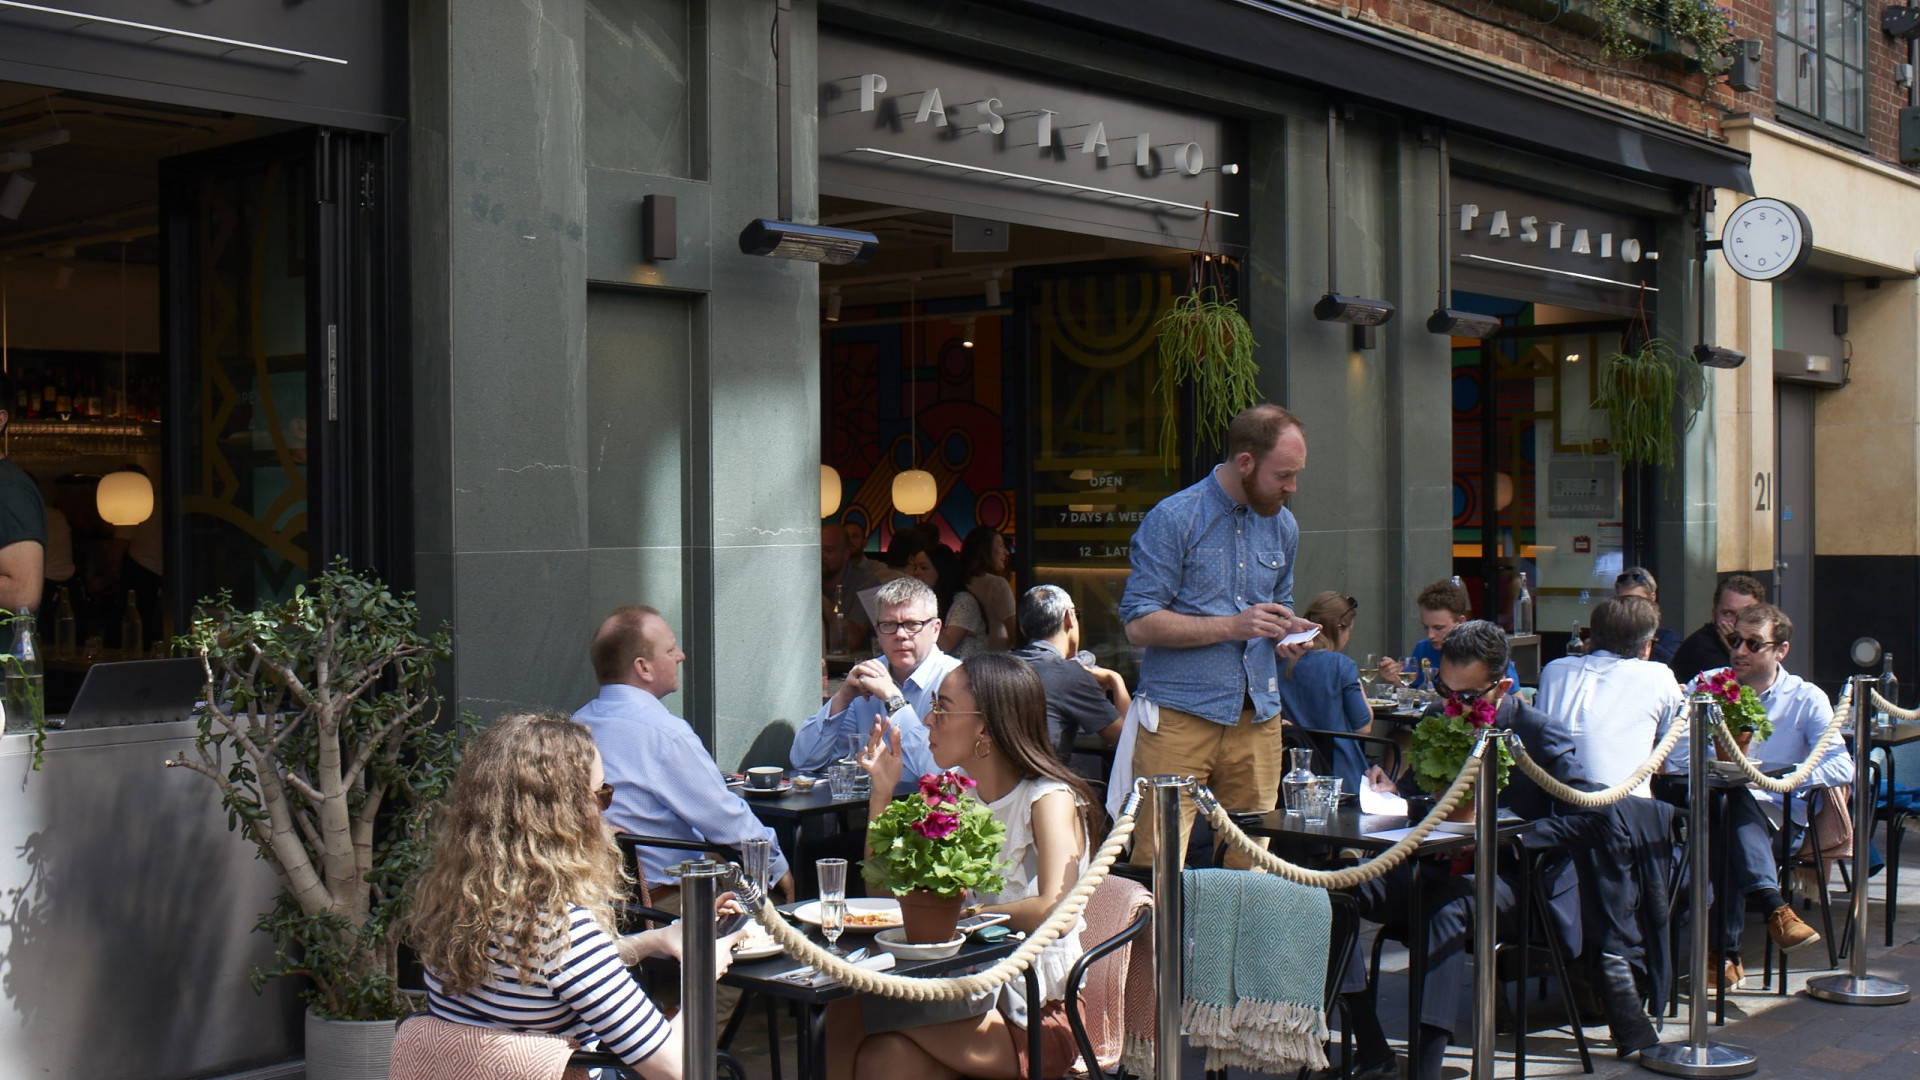 This is an image of the outdoor terrace at Pastaio in Soho, London.